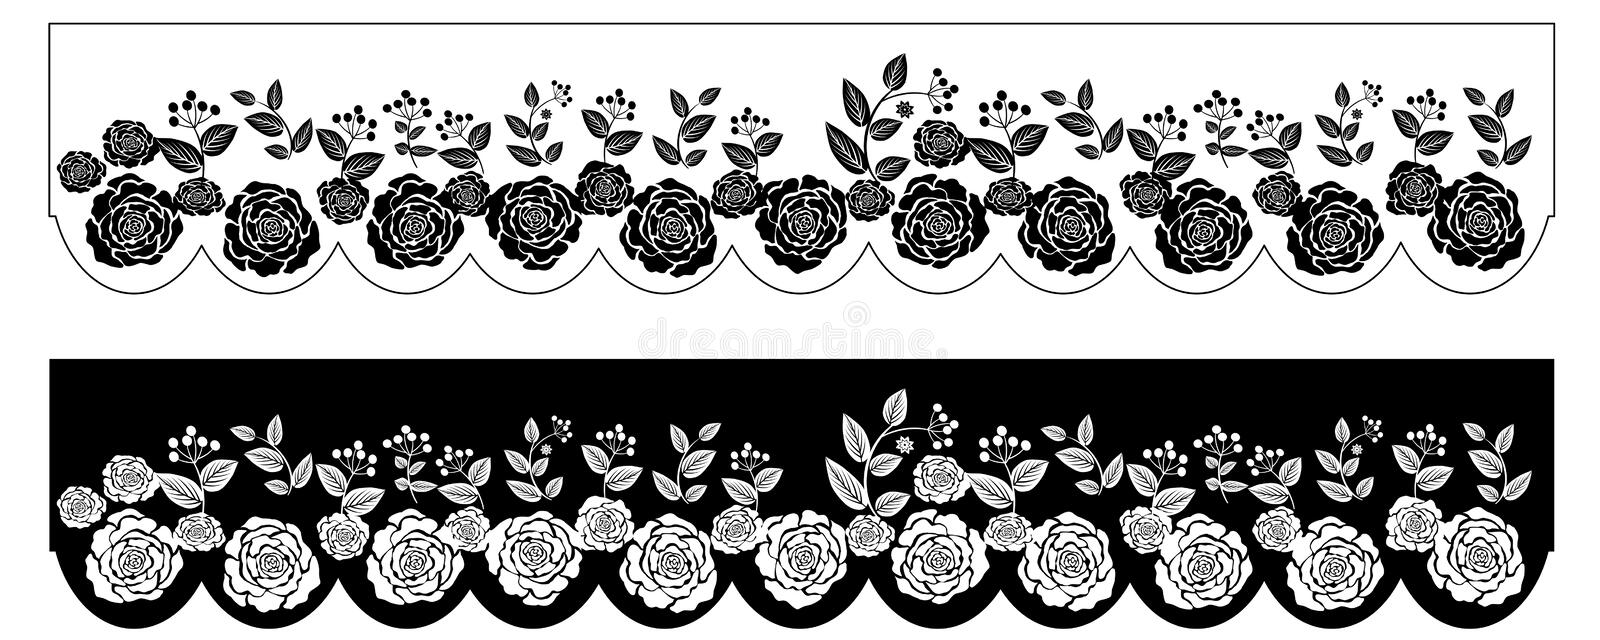 Black white flowers border stock vector illustration of leaves download black white flowers border stock vector illustration of leaves 96416797 mightylinksfo Image collections